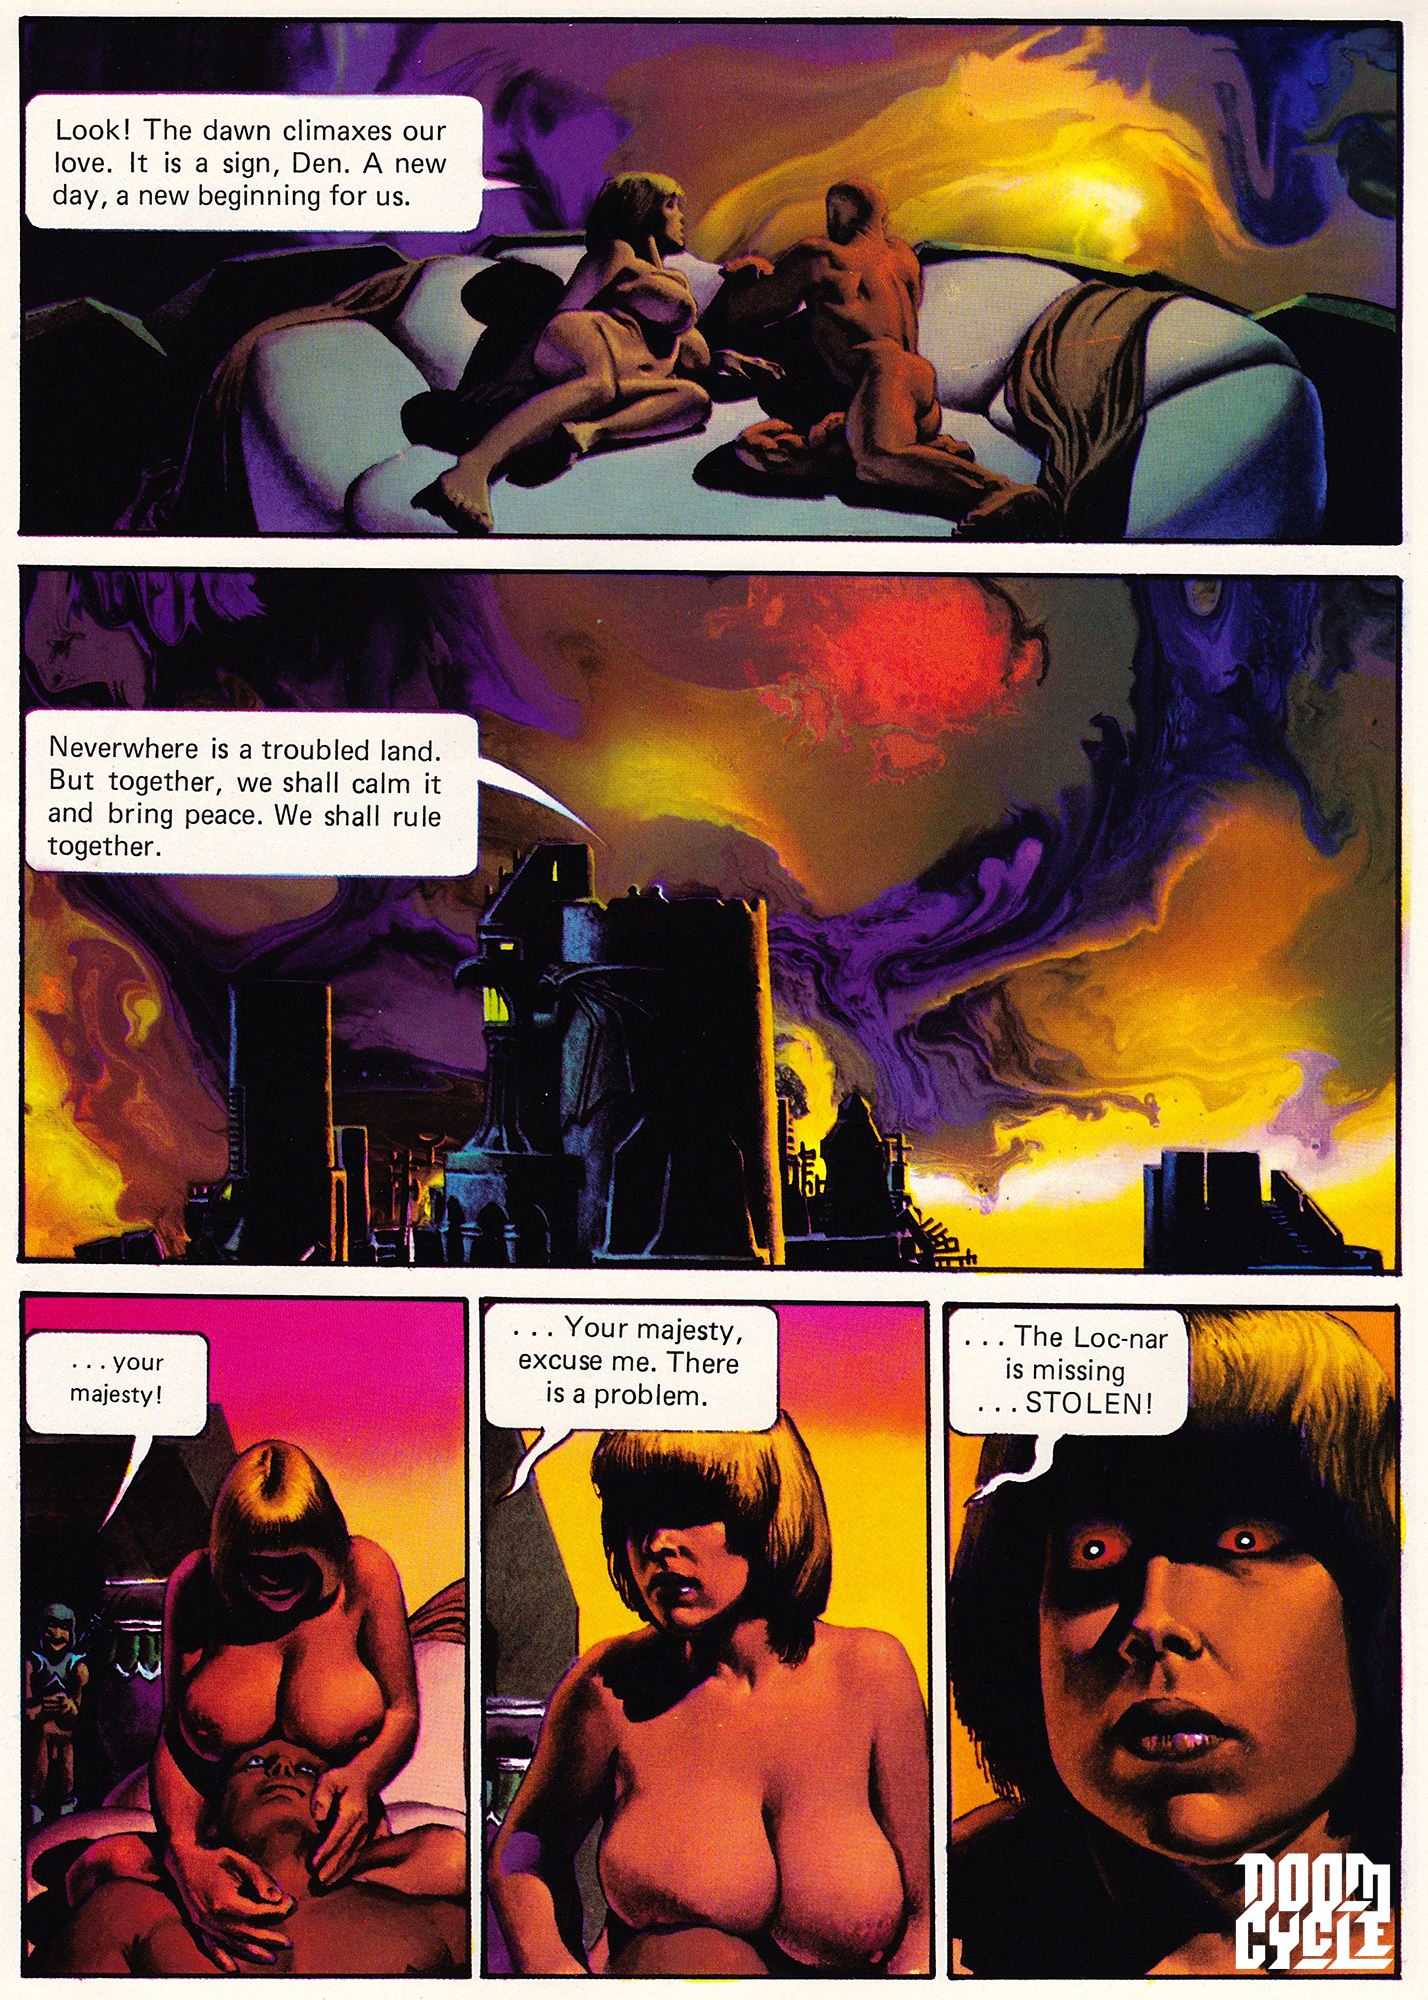 Den-Richard-Corben-Oct77